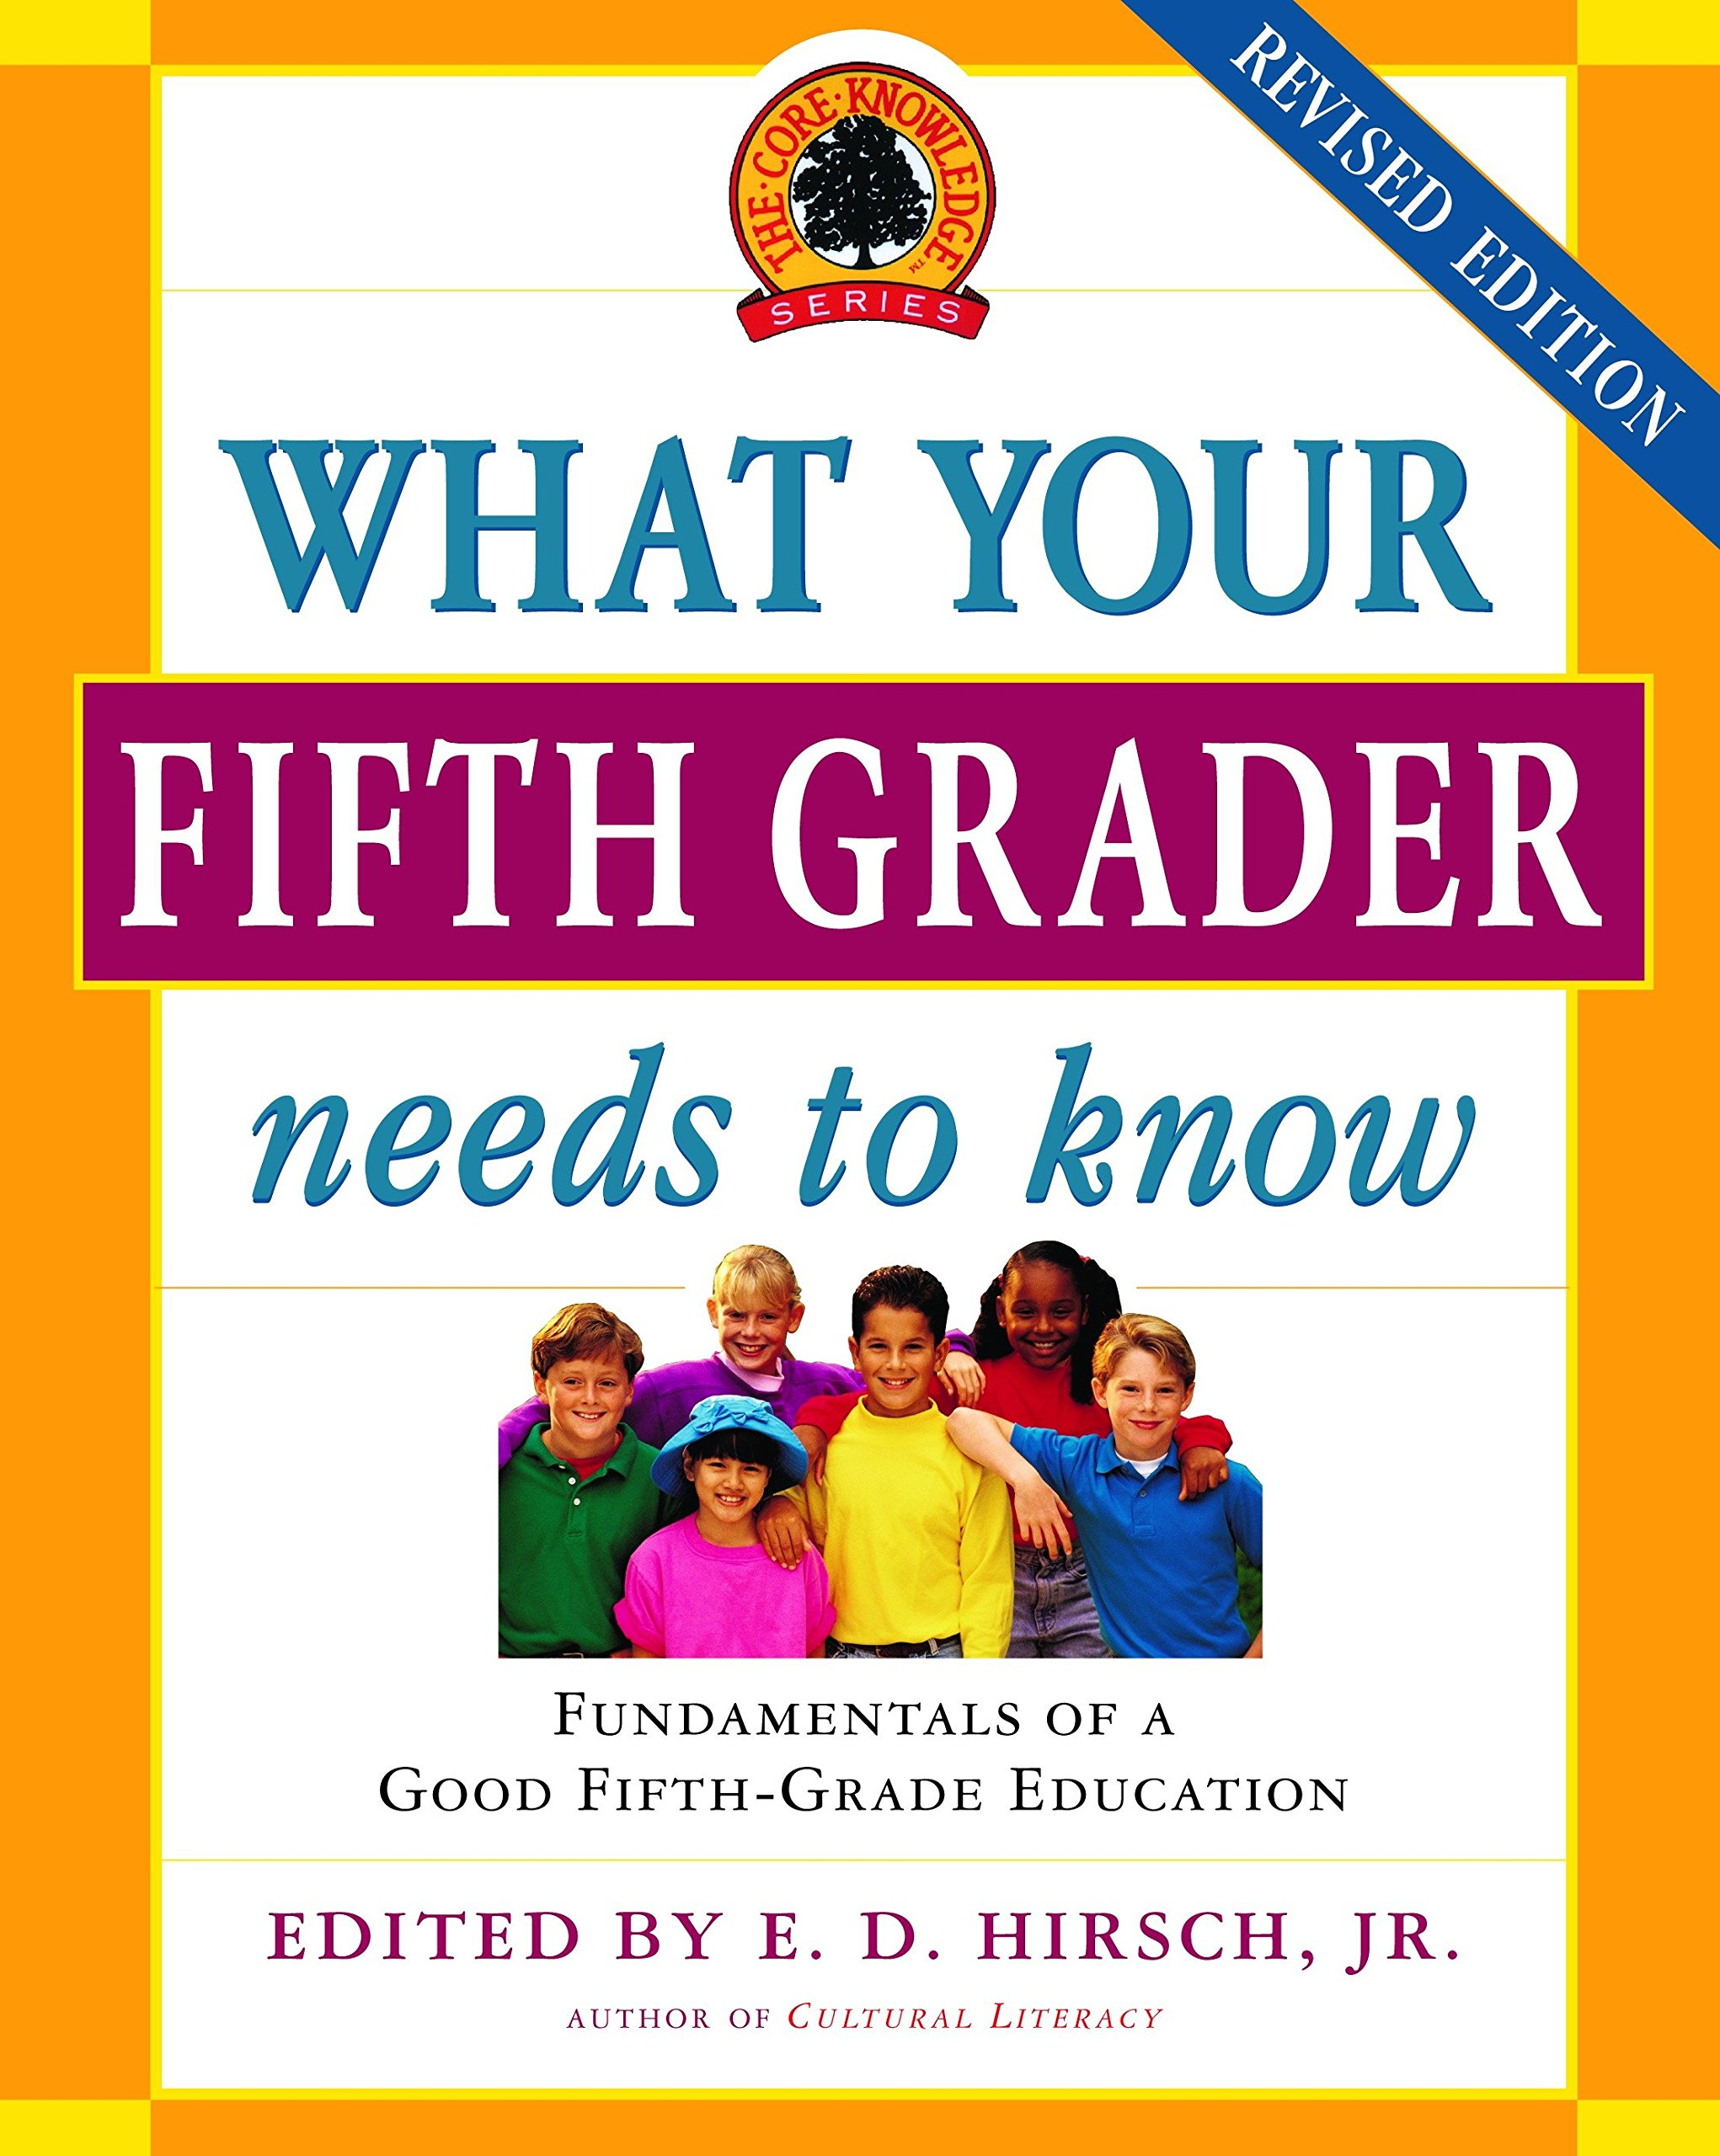 Image OfWhat Your Fifth Grader Needs To Know: Fundamentals Of A Good Fifth-Grade Education (Core Knowledge Series)